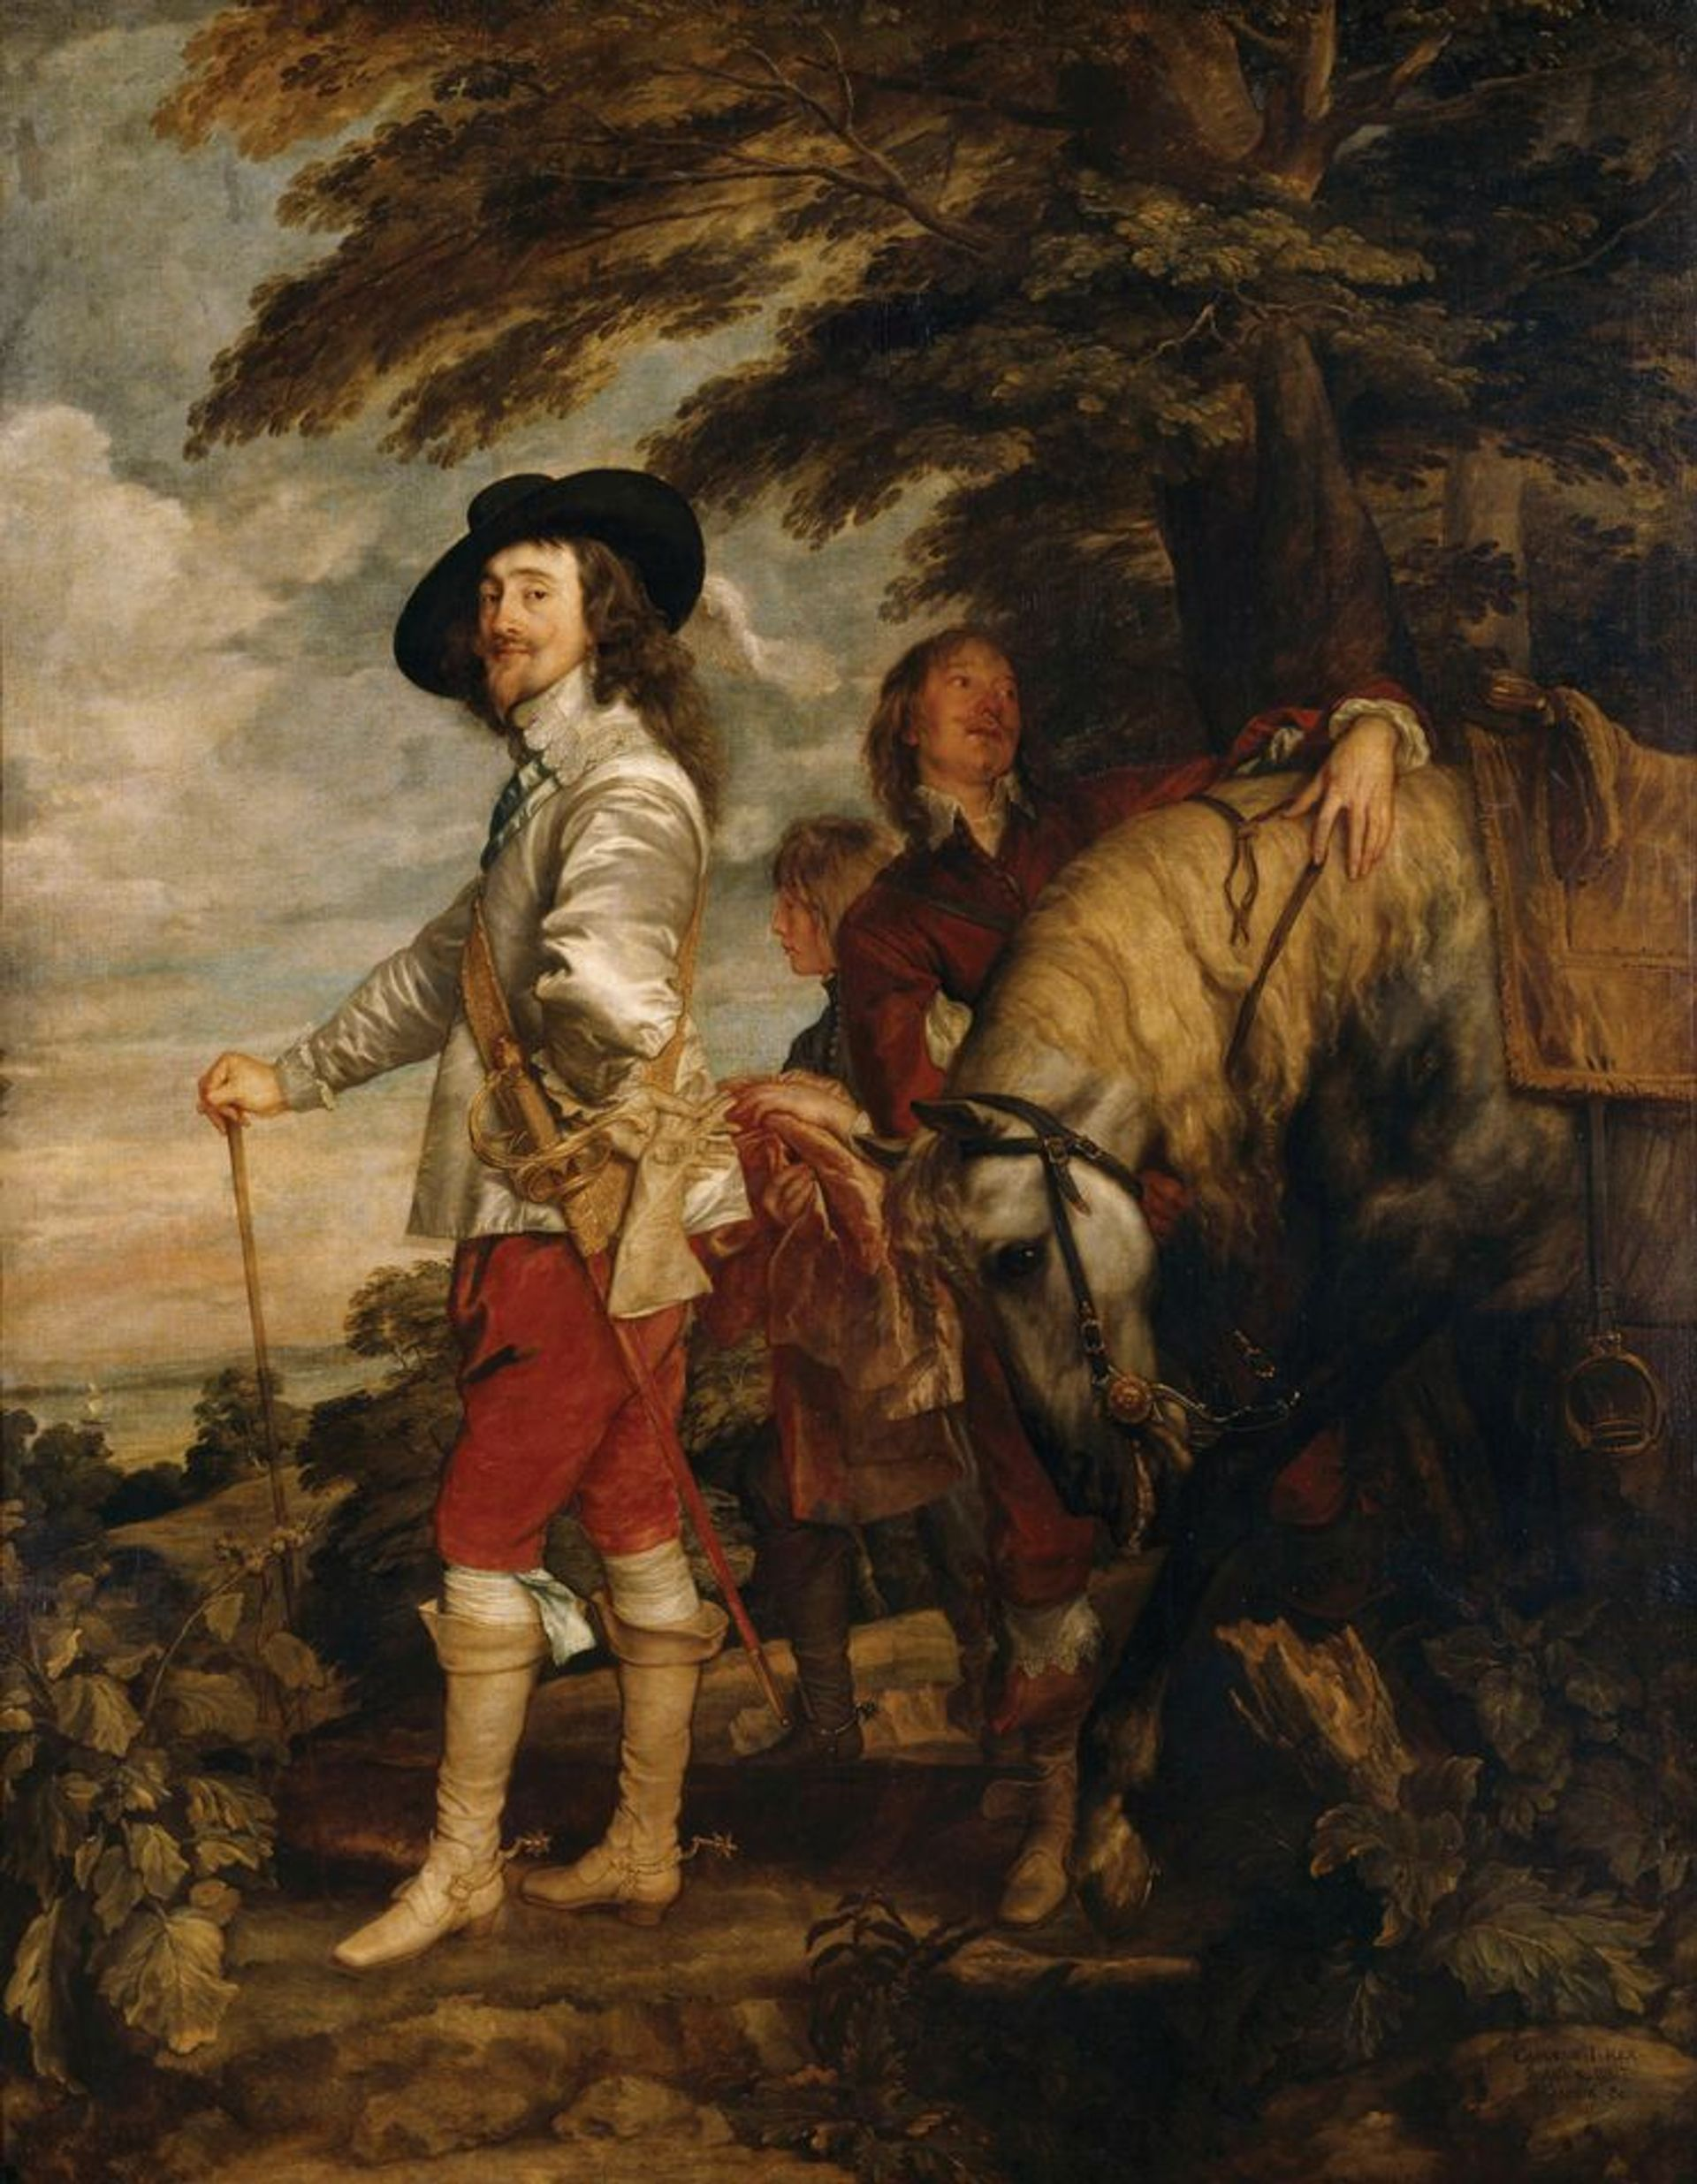 """Anthony van Dyck's Charles I in the Hunting Field or """"Le Roi à la Chasse"""" (around 1636) RMN-Grand Palais; Musée du Louvre; Christian Jean"""